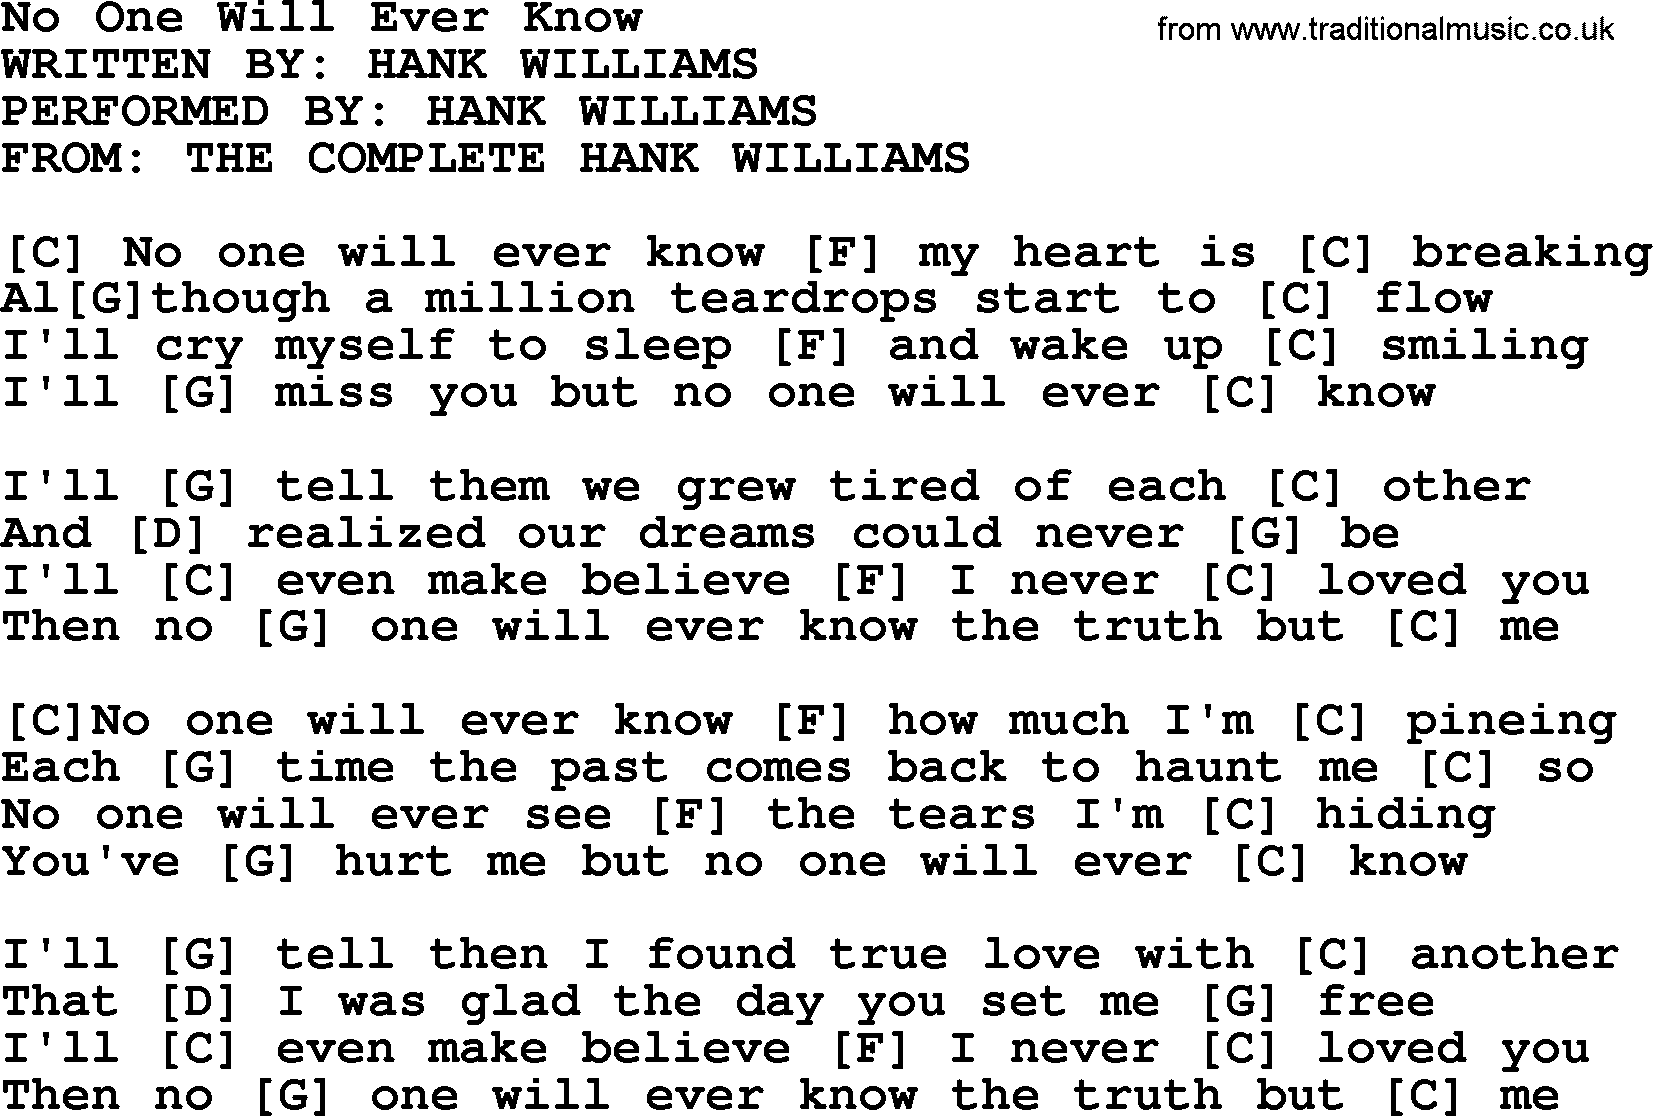 Hank Williams Song No One Will Ever Know Lyrics And Chords